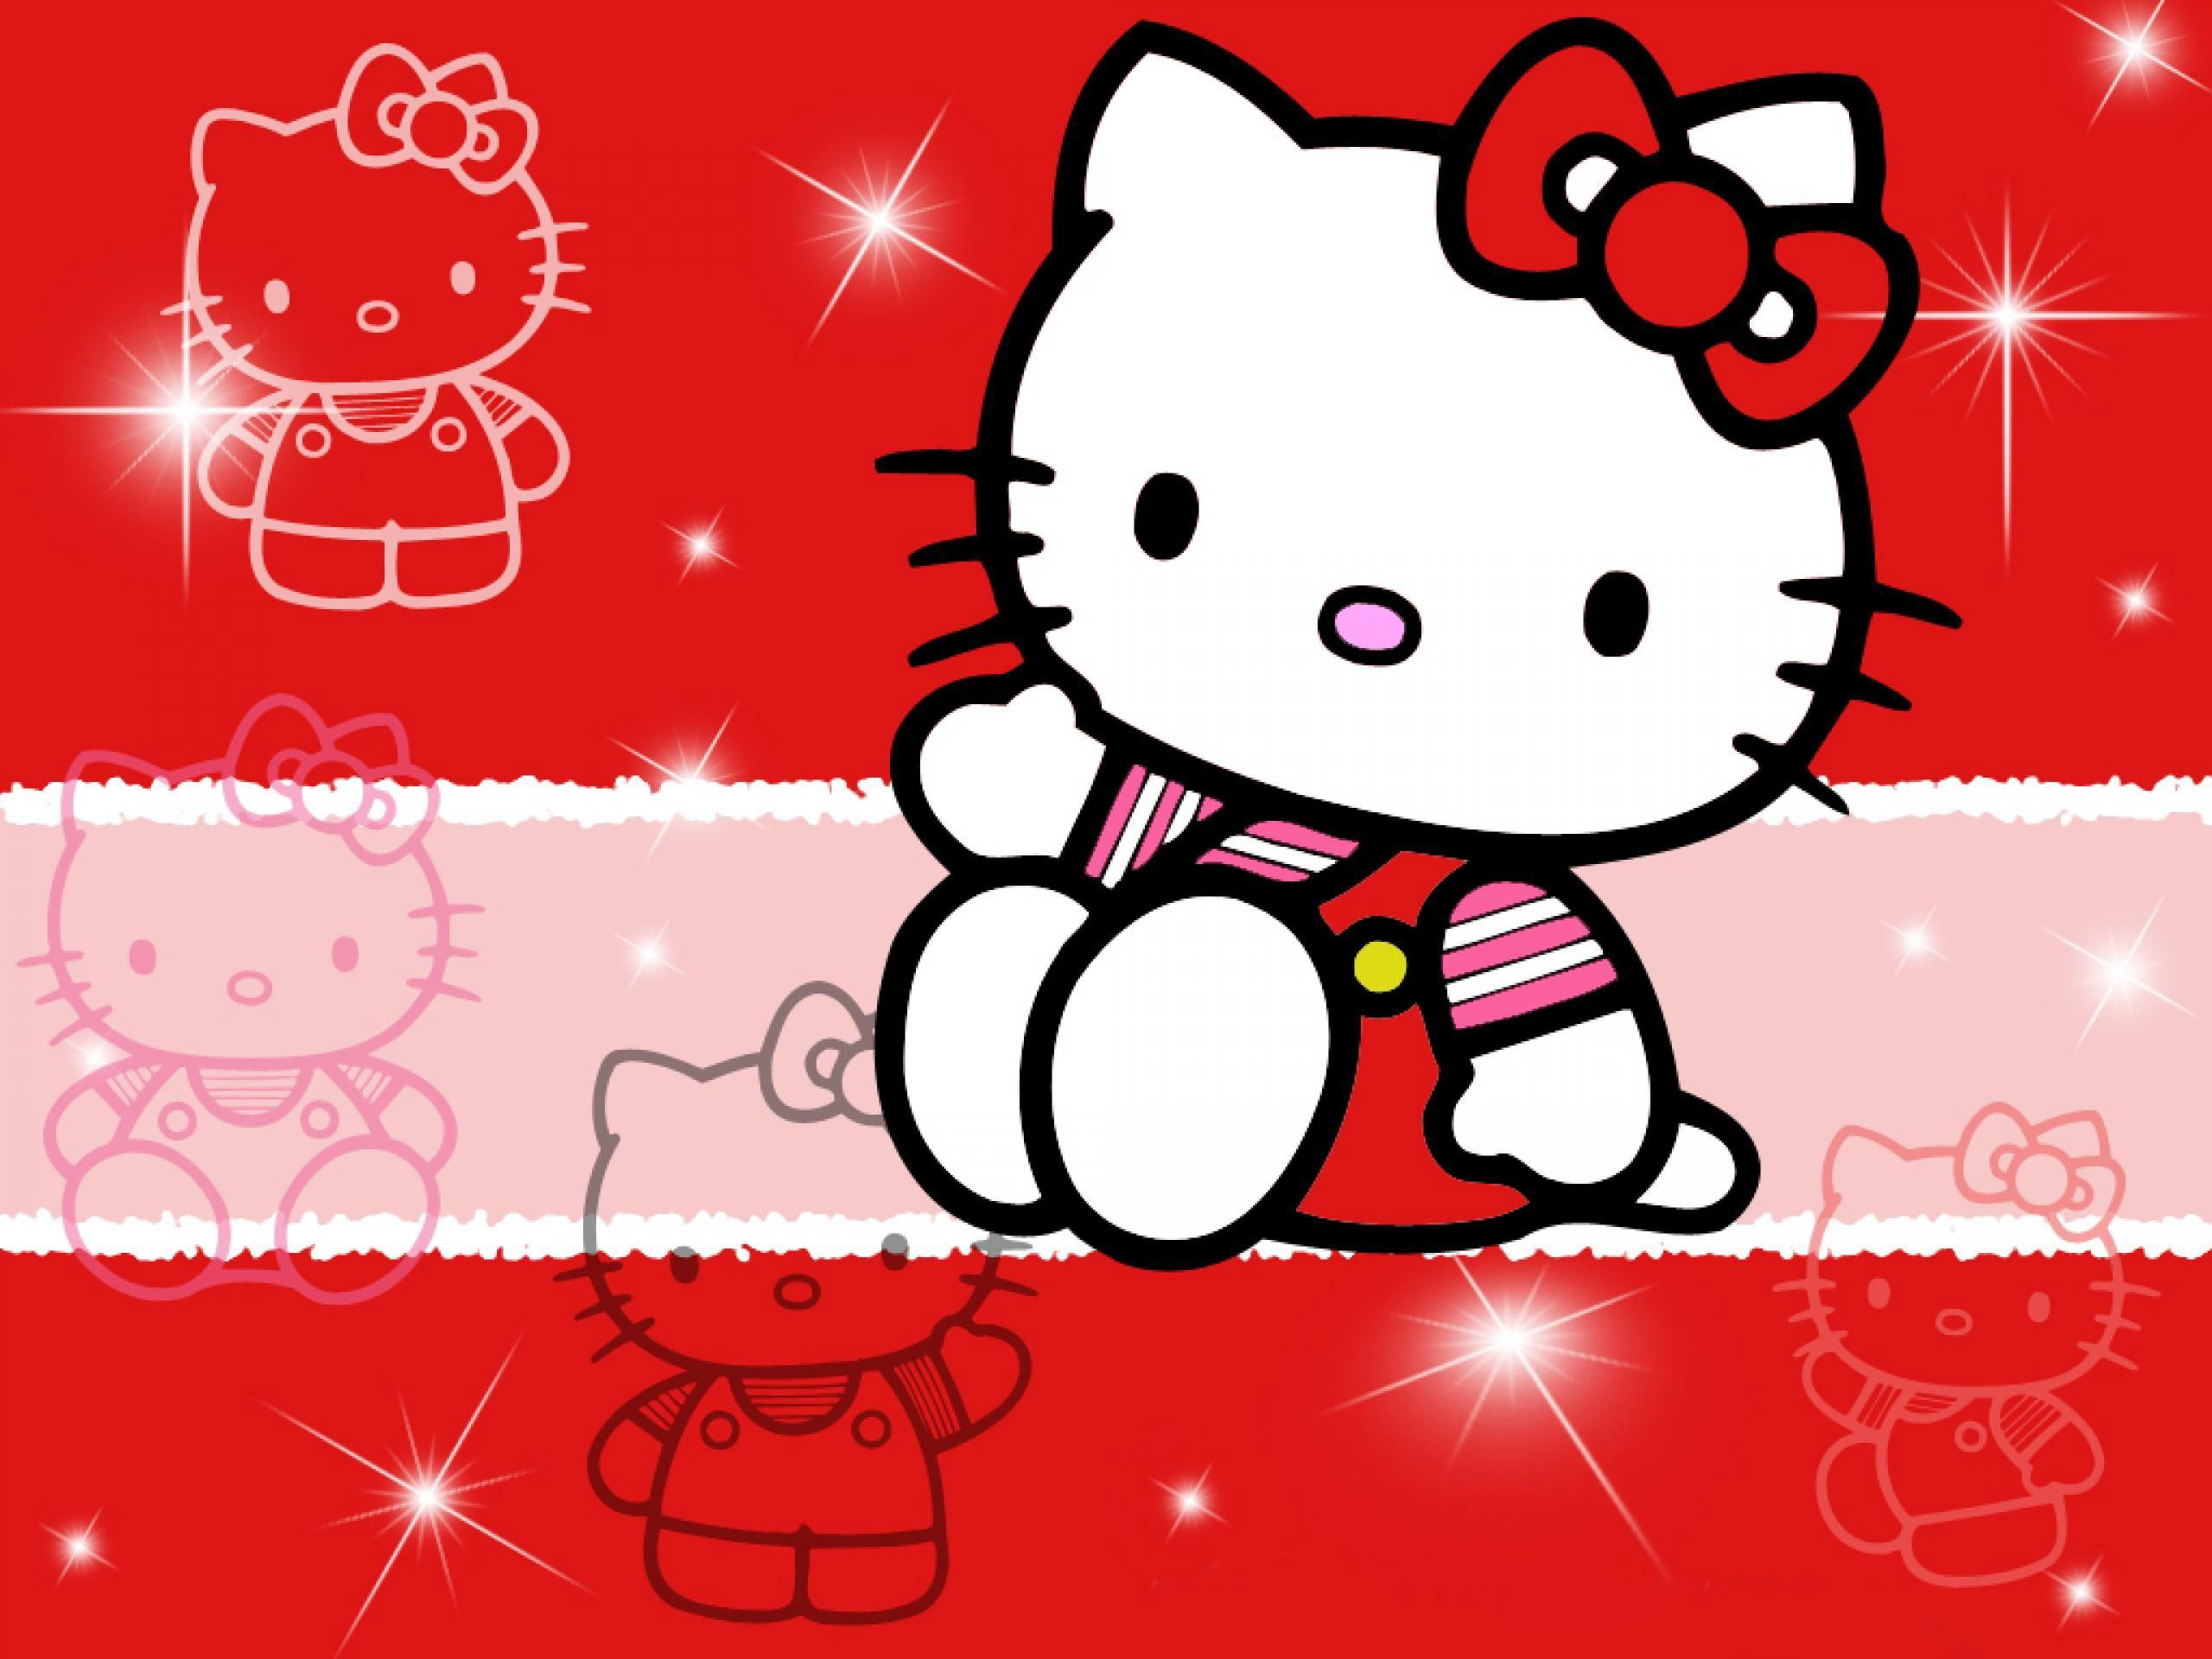 Who android wallpaper pictures of snow free hello kitty wallpaper - Hello Kitty Wallpapers Hd